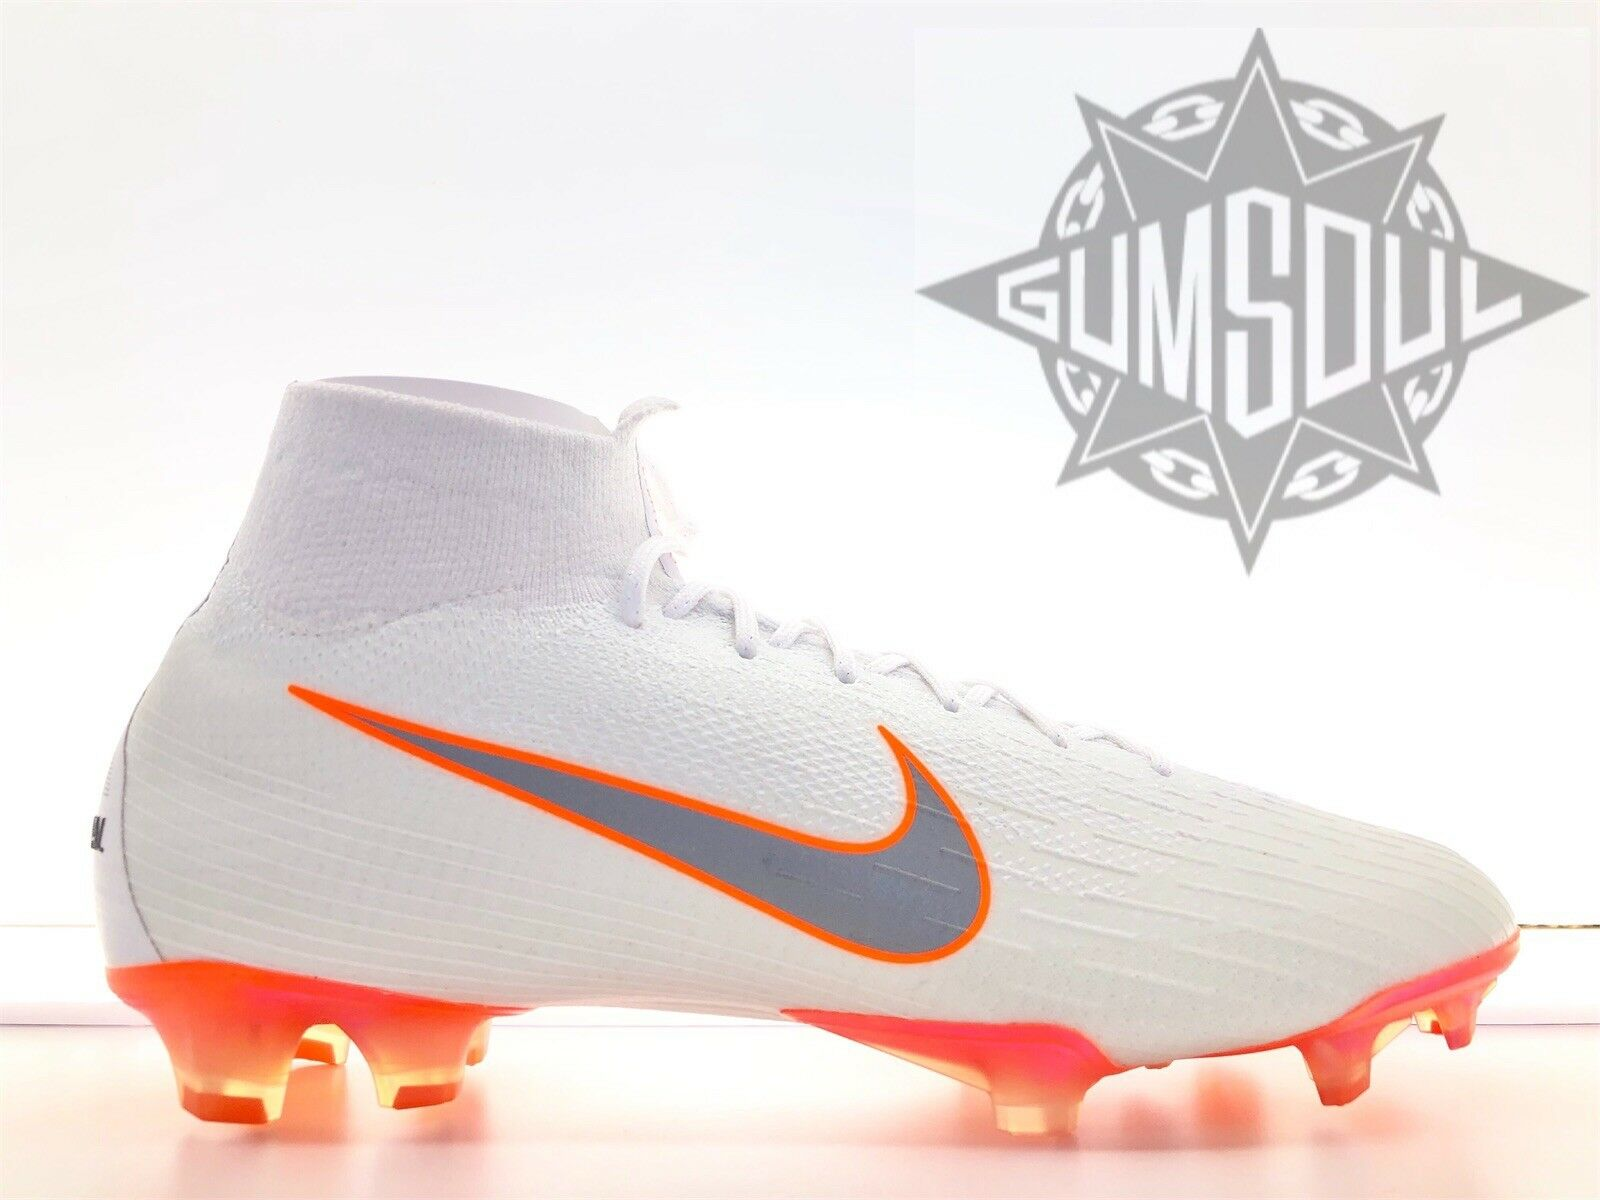 NIKE MERCURIAL SUPERFLY 6 VI ELITE FG SOCCER CLEATS AH7365 107 WHITE GREY sz 11